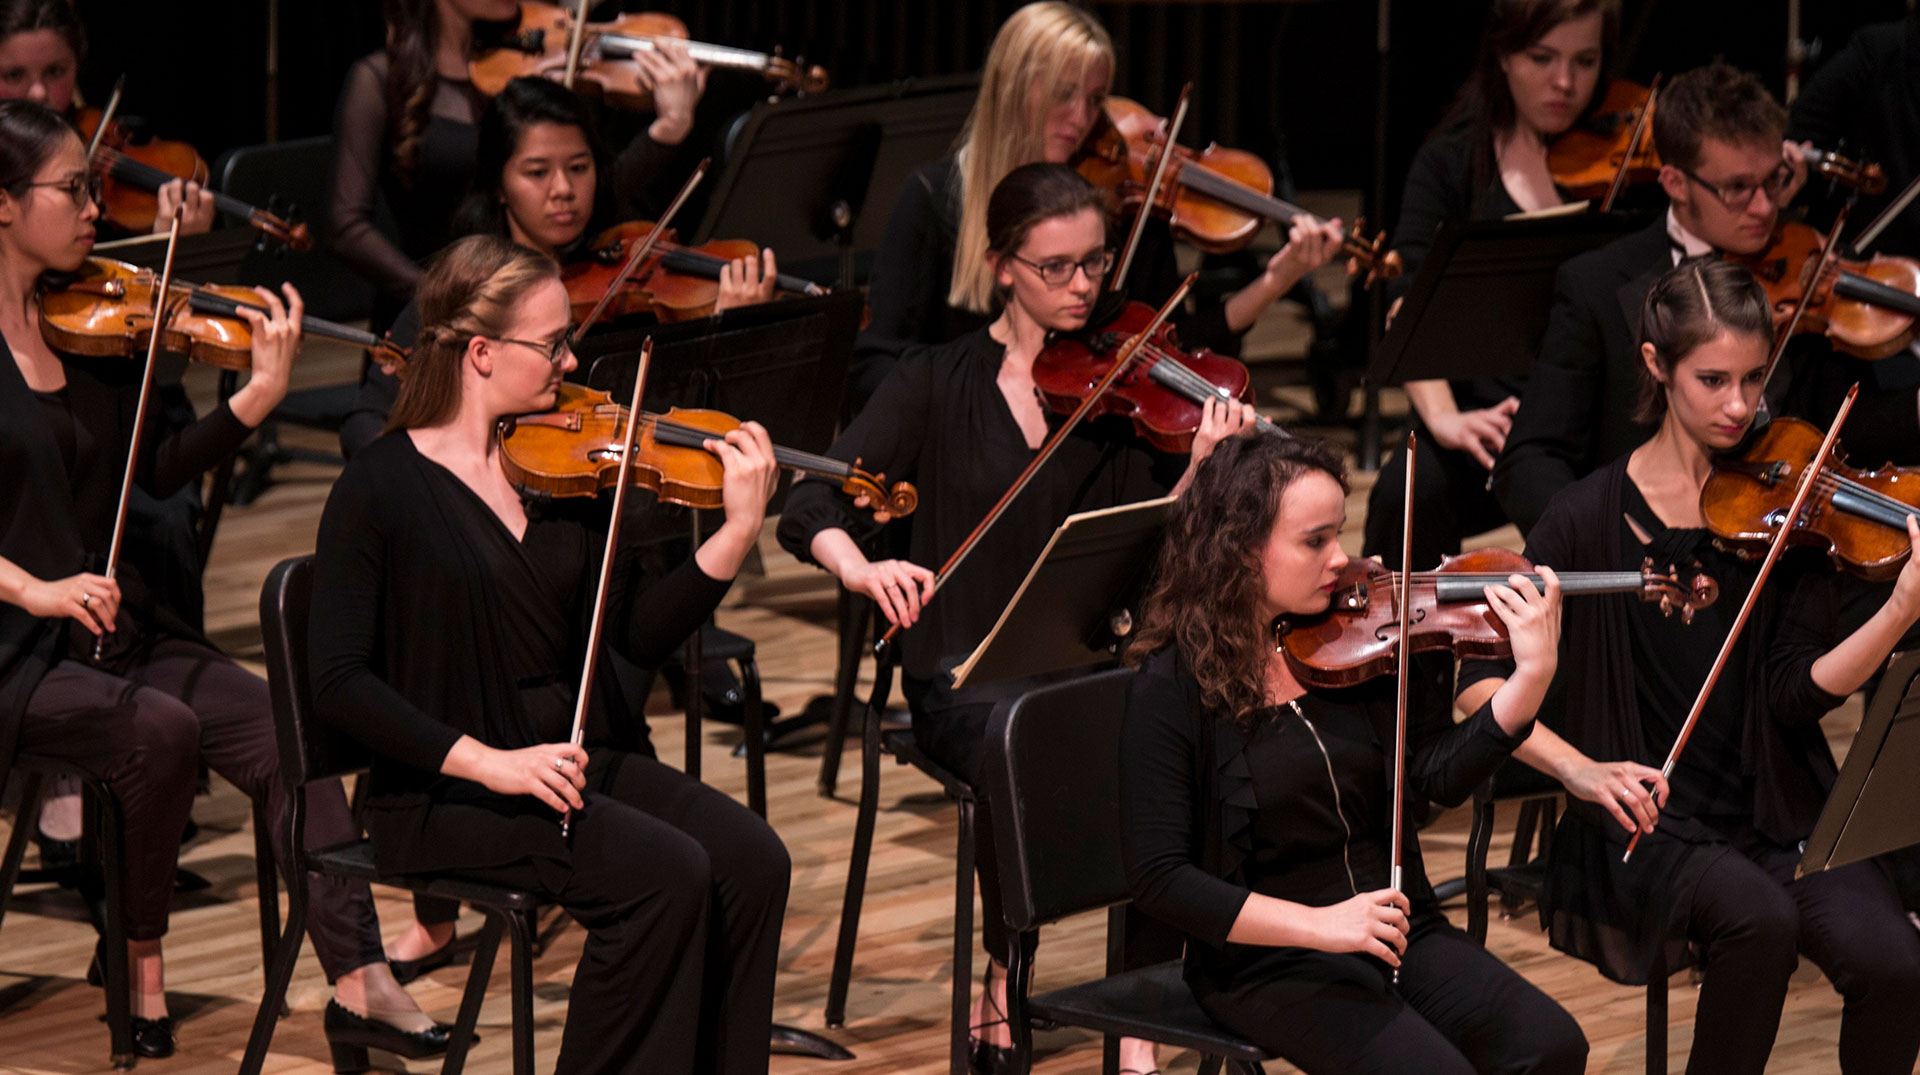 Symphony Orchestra at Kimball Recital Hall